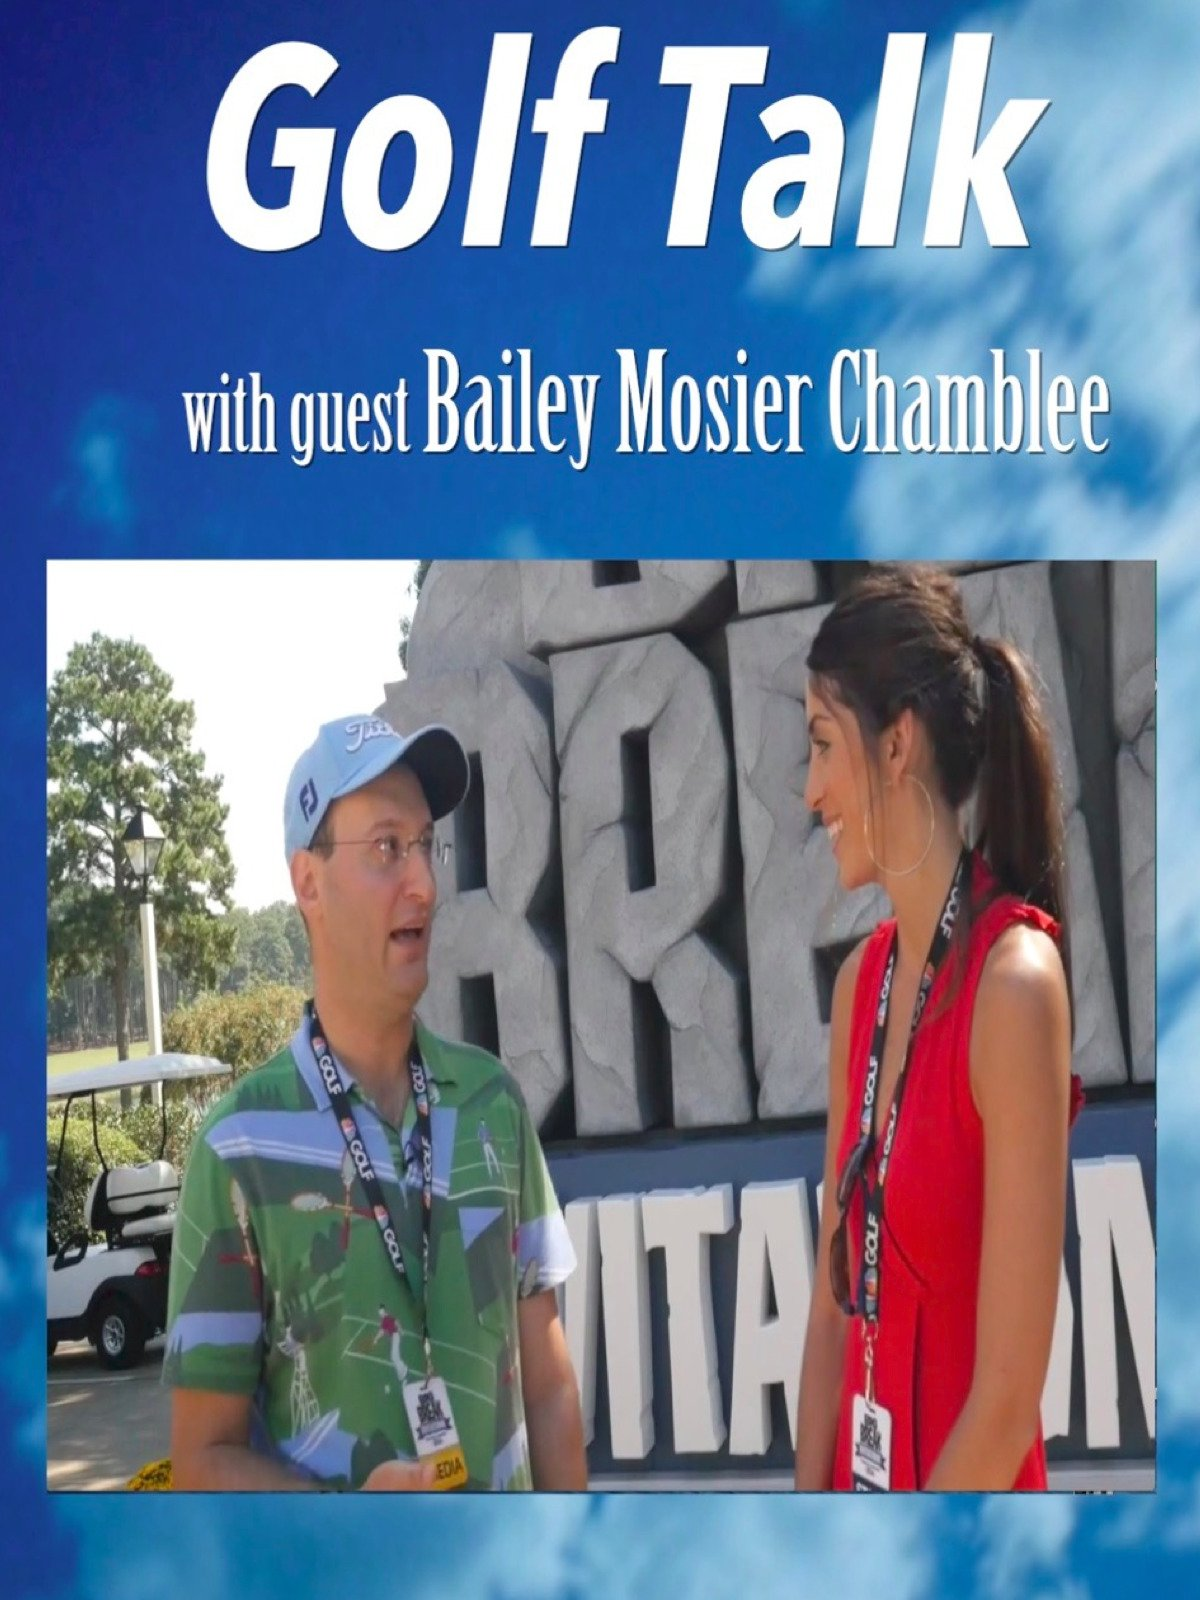 Golf Talk with guest Bailey Mosier Chamblee